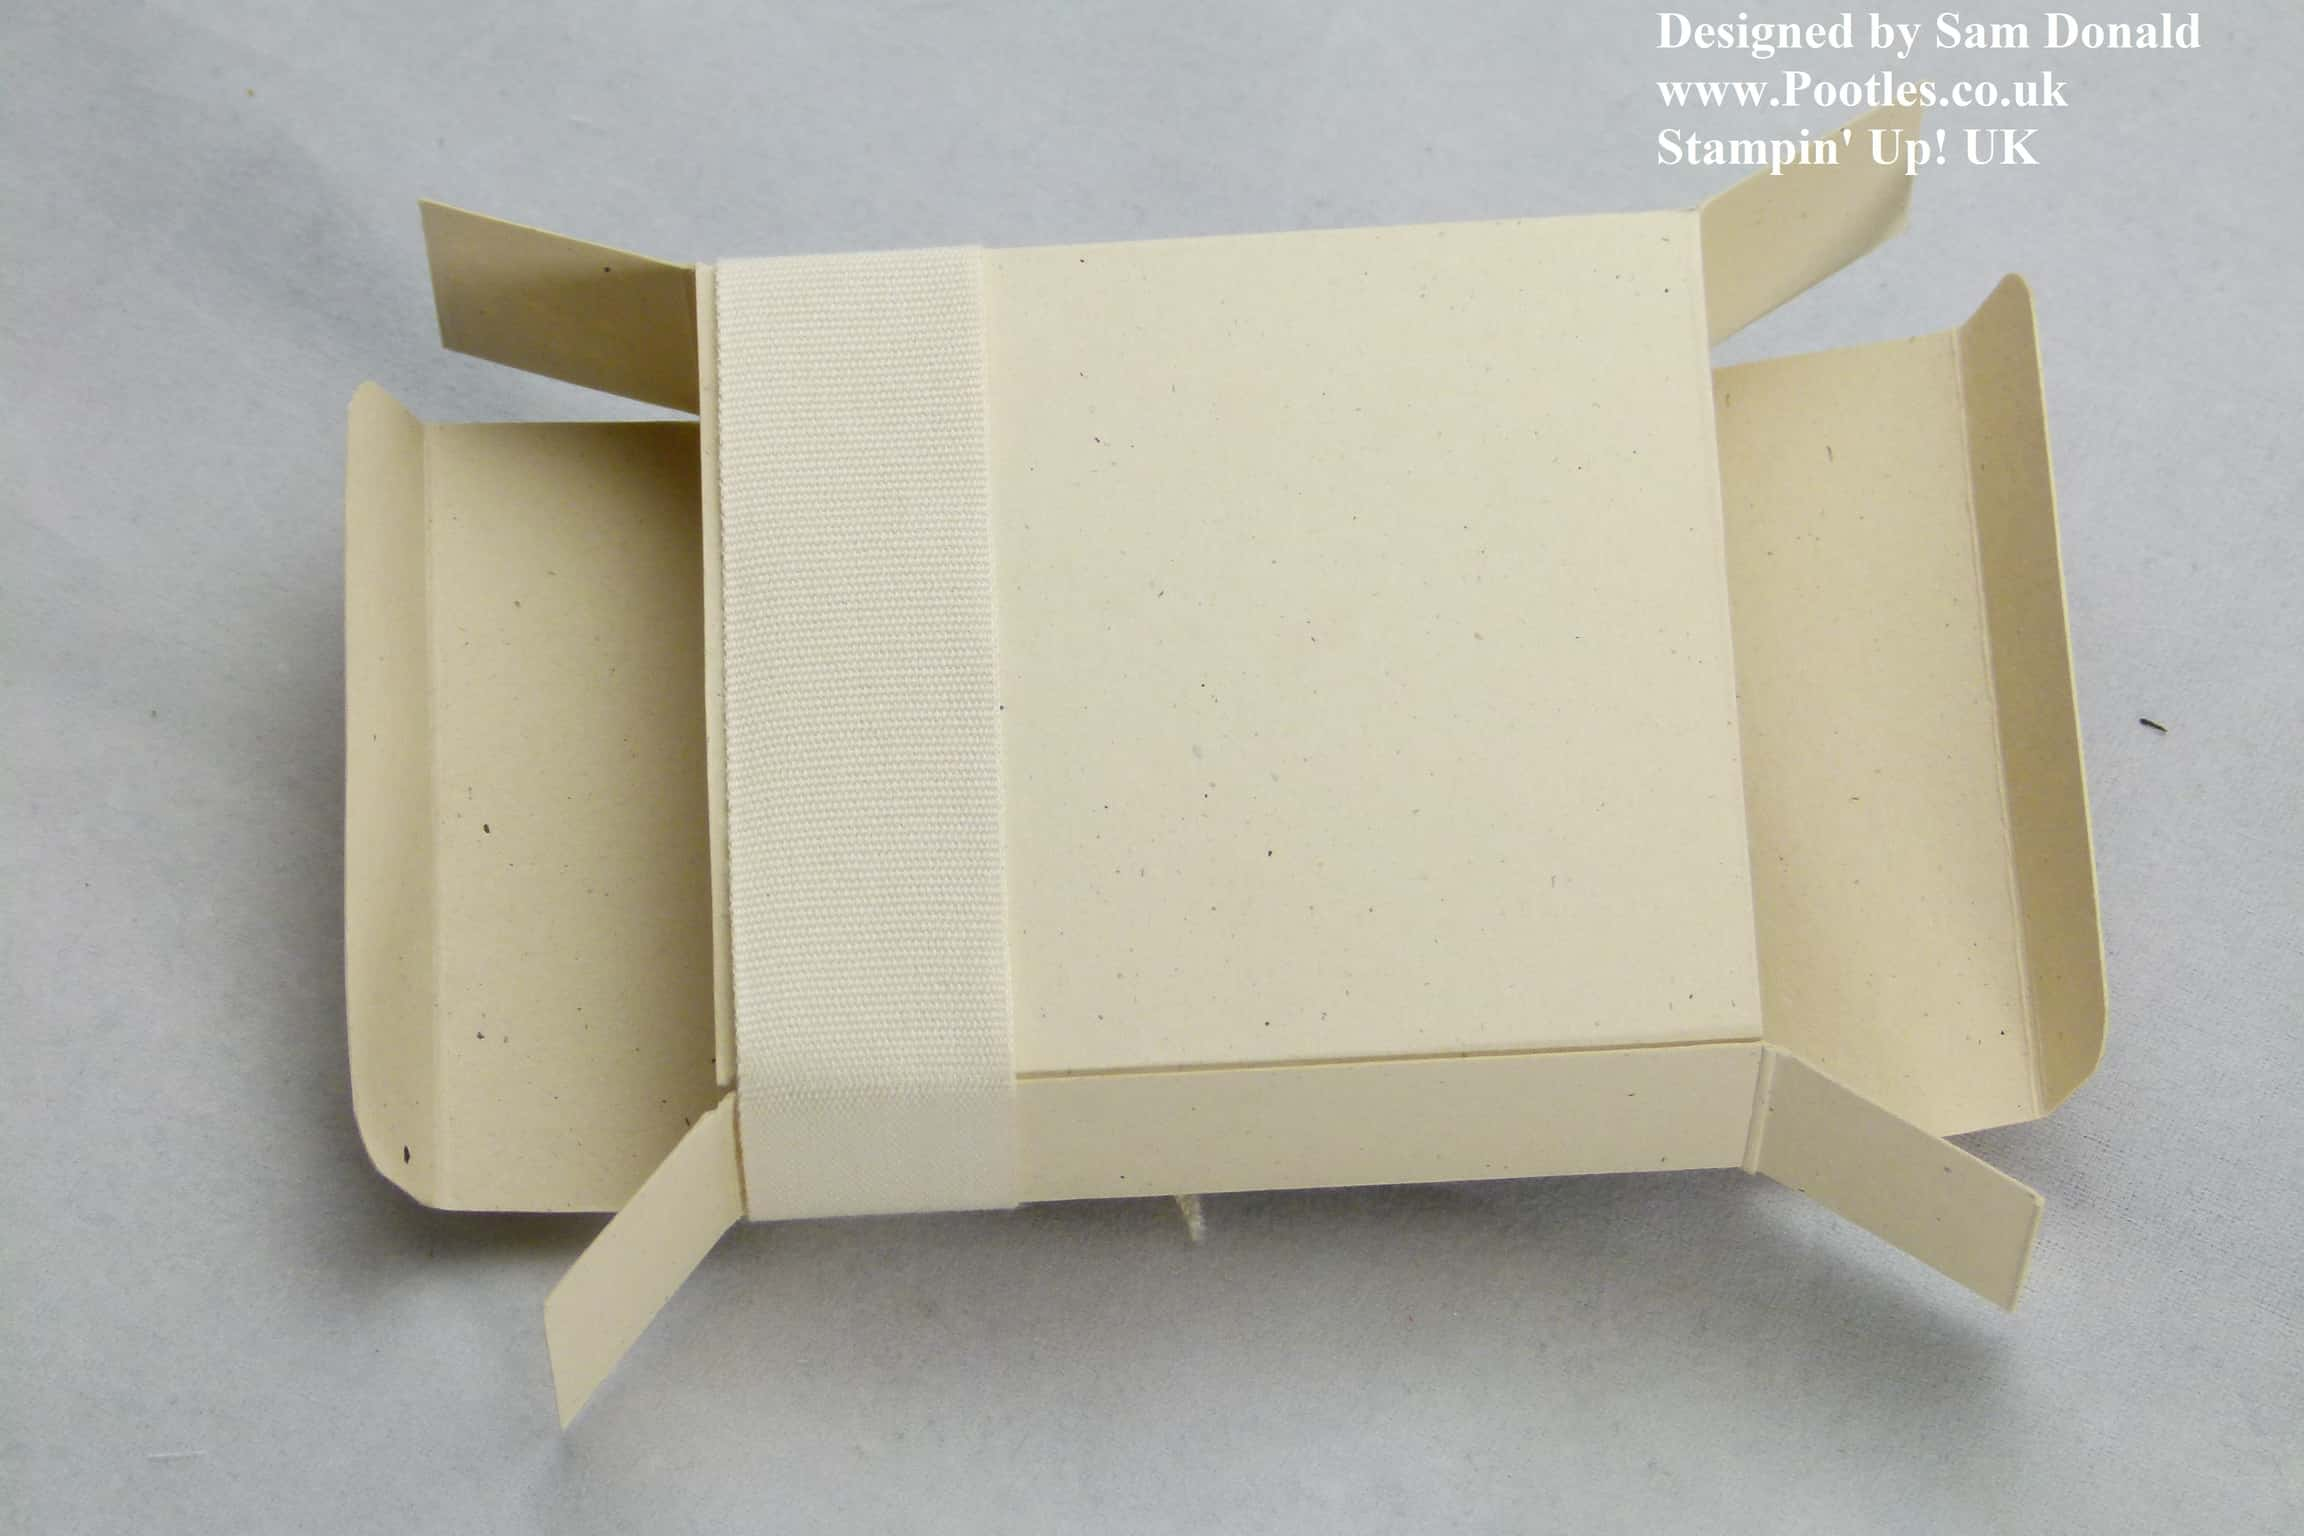 Pootles Stampin Up Easy Stick Easy Fold Box 4